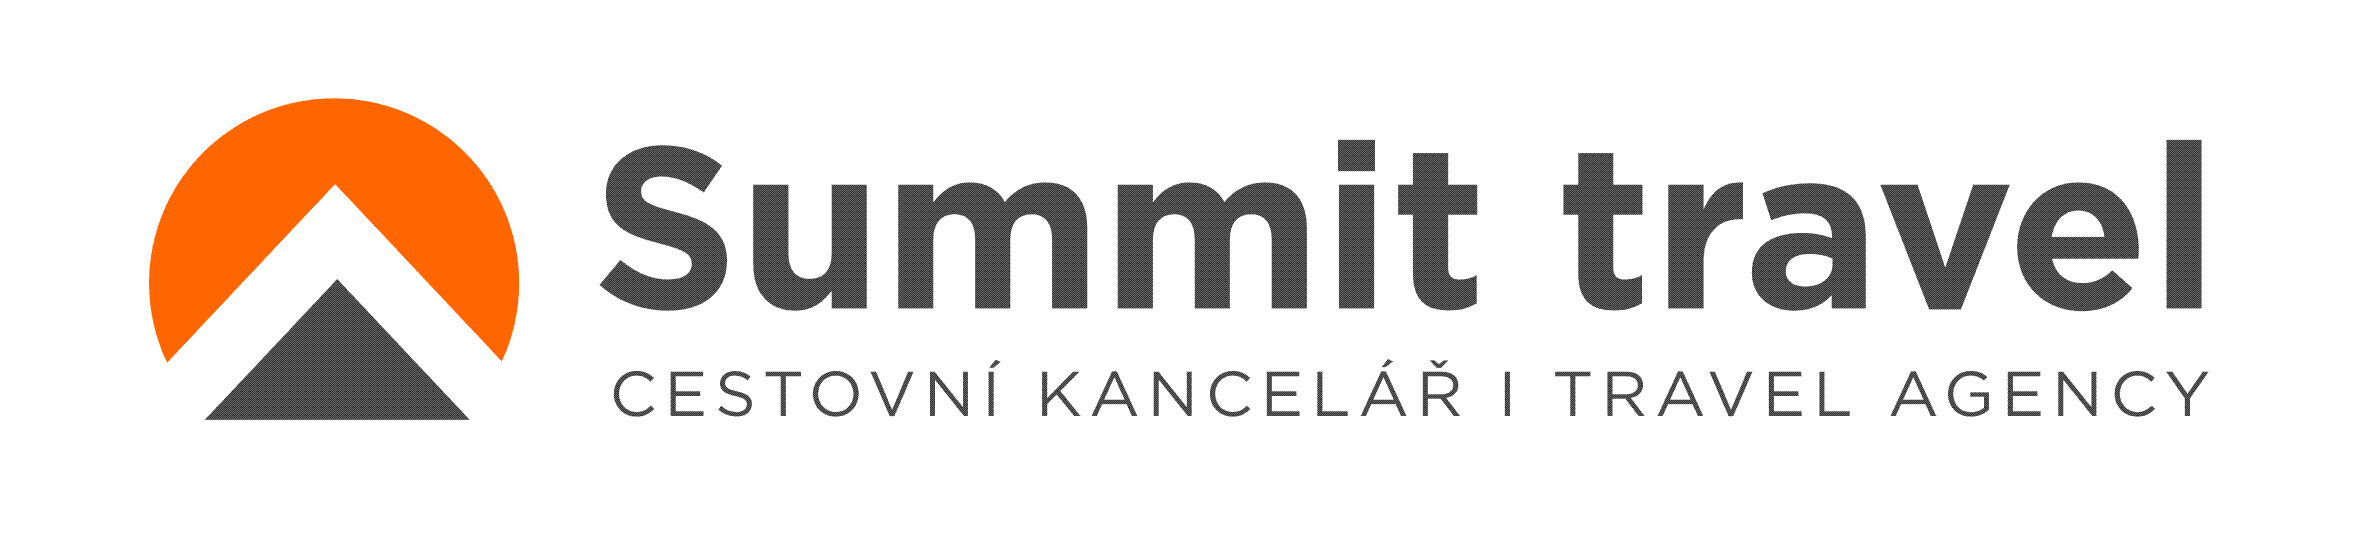 Summit logo + slogan